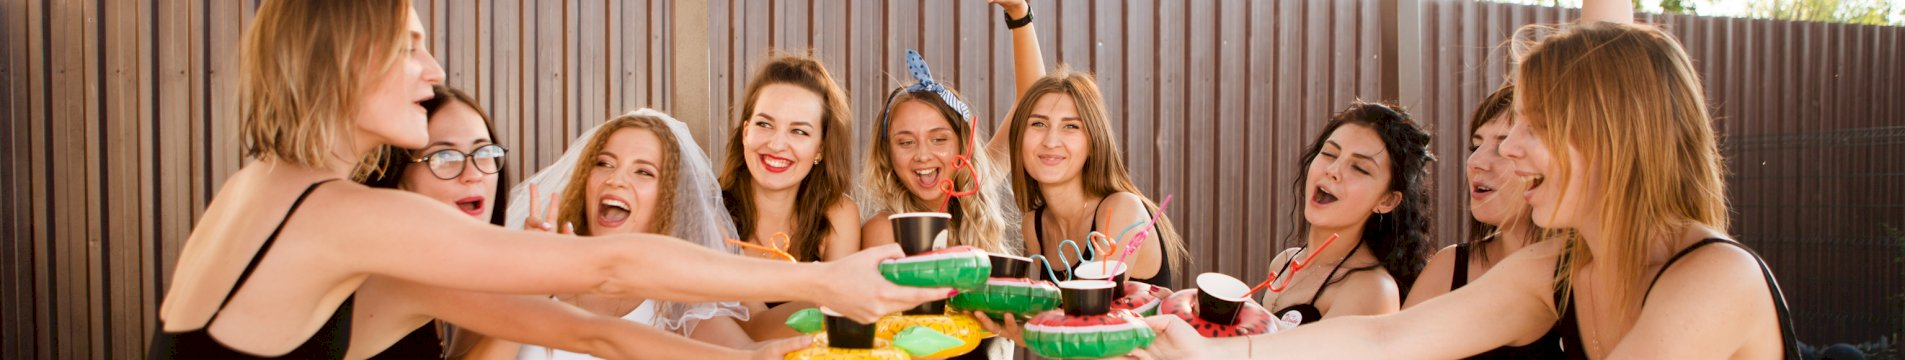 Ladies on a hen party celebrating